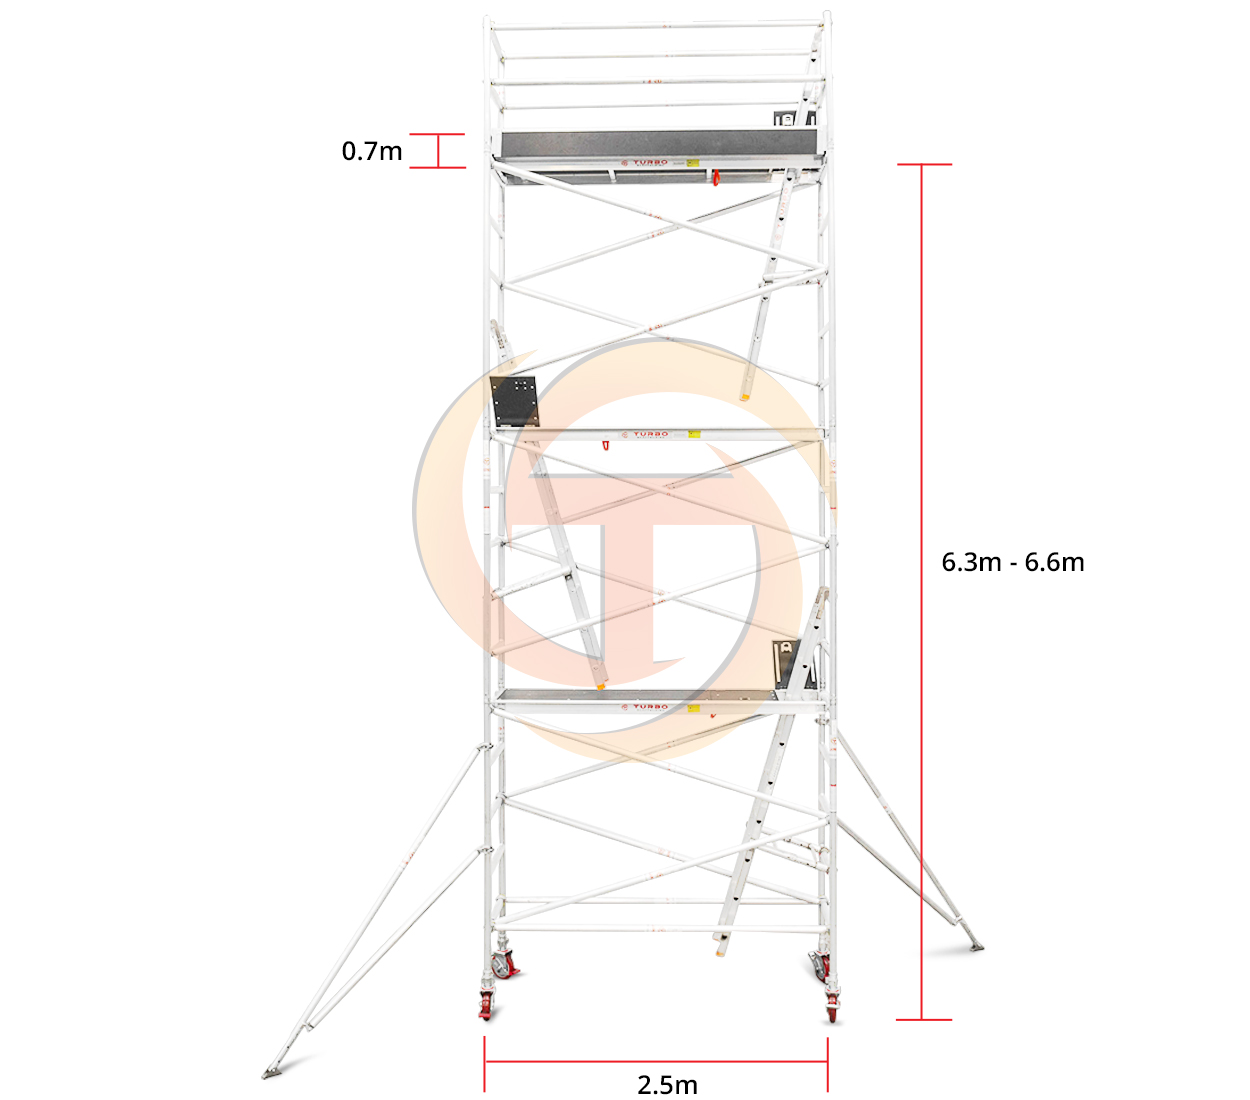 6.3m – 6.6m Narrow Mobile Tower (Standing Height)